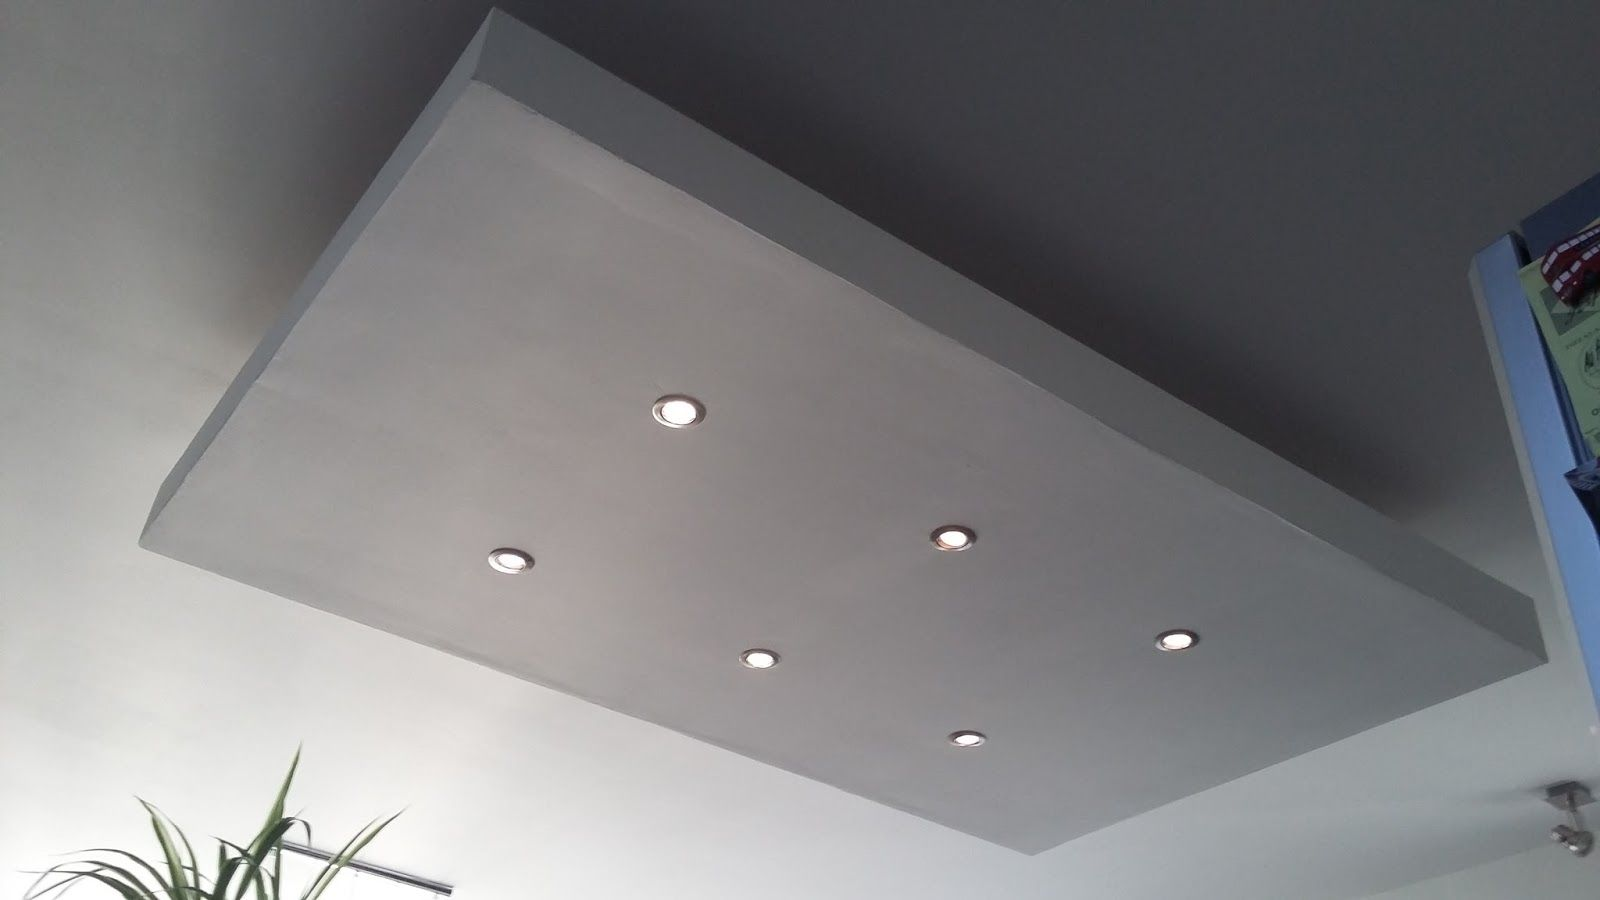 D roch plafond descendu suspendu ilot central for Deco faux plafond placo